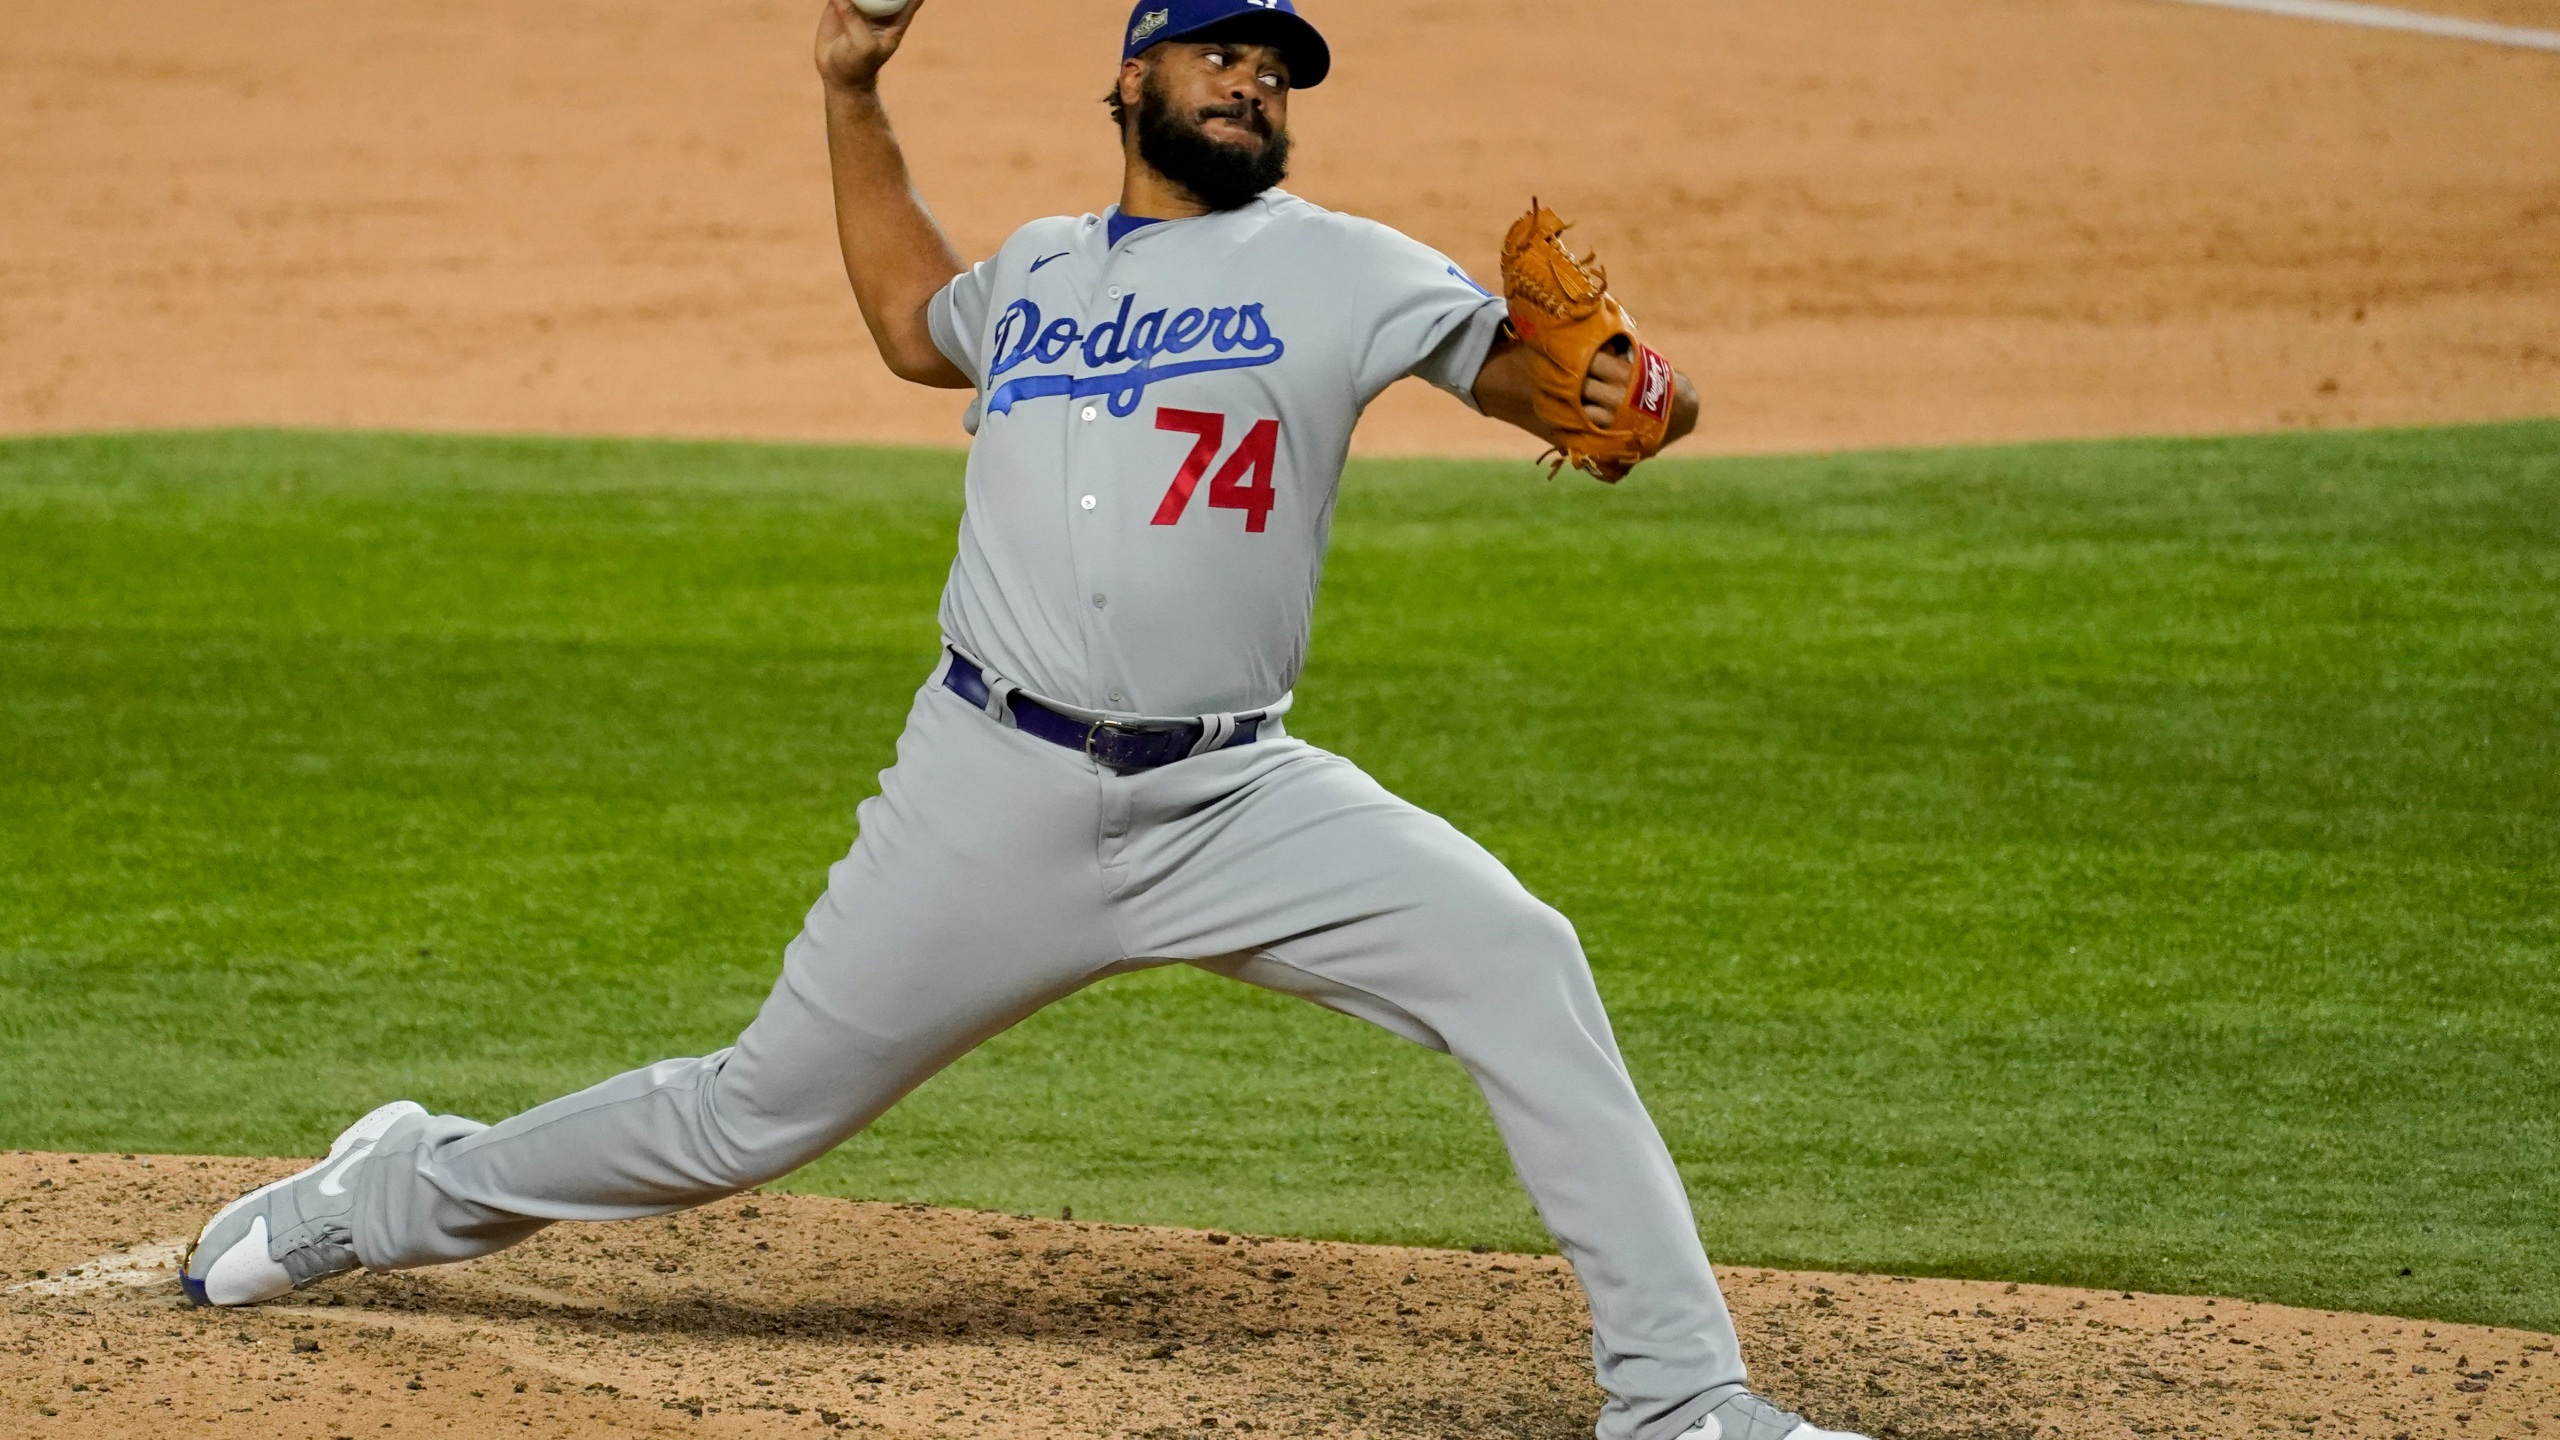 Los Angeles Dodgers relief pitcher Kenley Jansen throws against the Atlanta Braves during the ninth inning in Game 5 of a baseball National League Championship Series Friday, Oct. 16, 2020, in Arlington, Texas. (AP Photo/Tony Gutierrez)